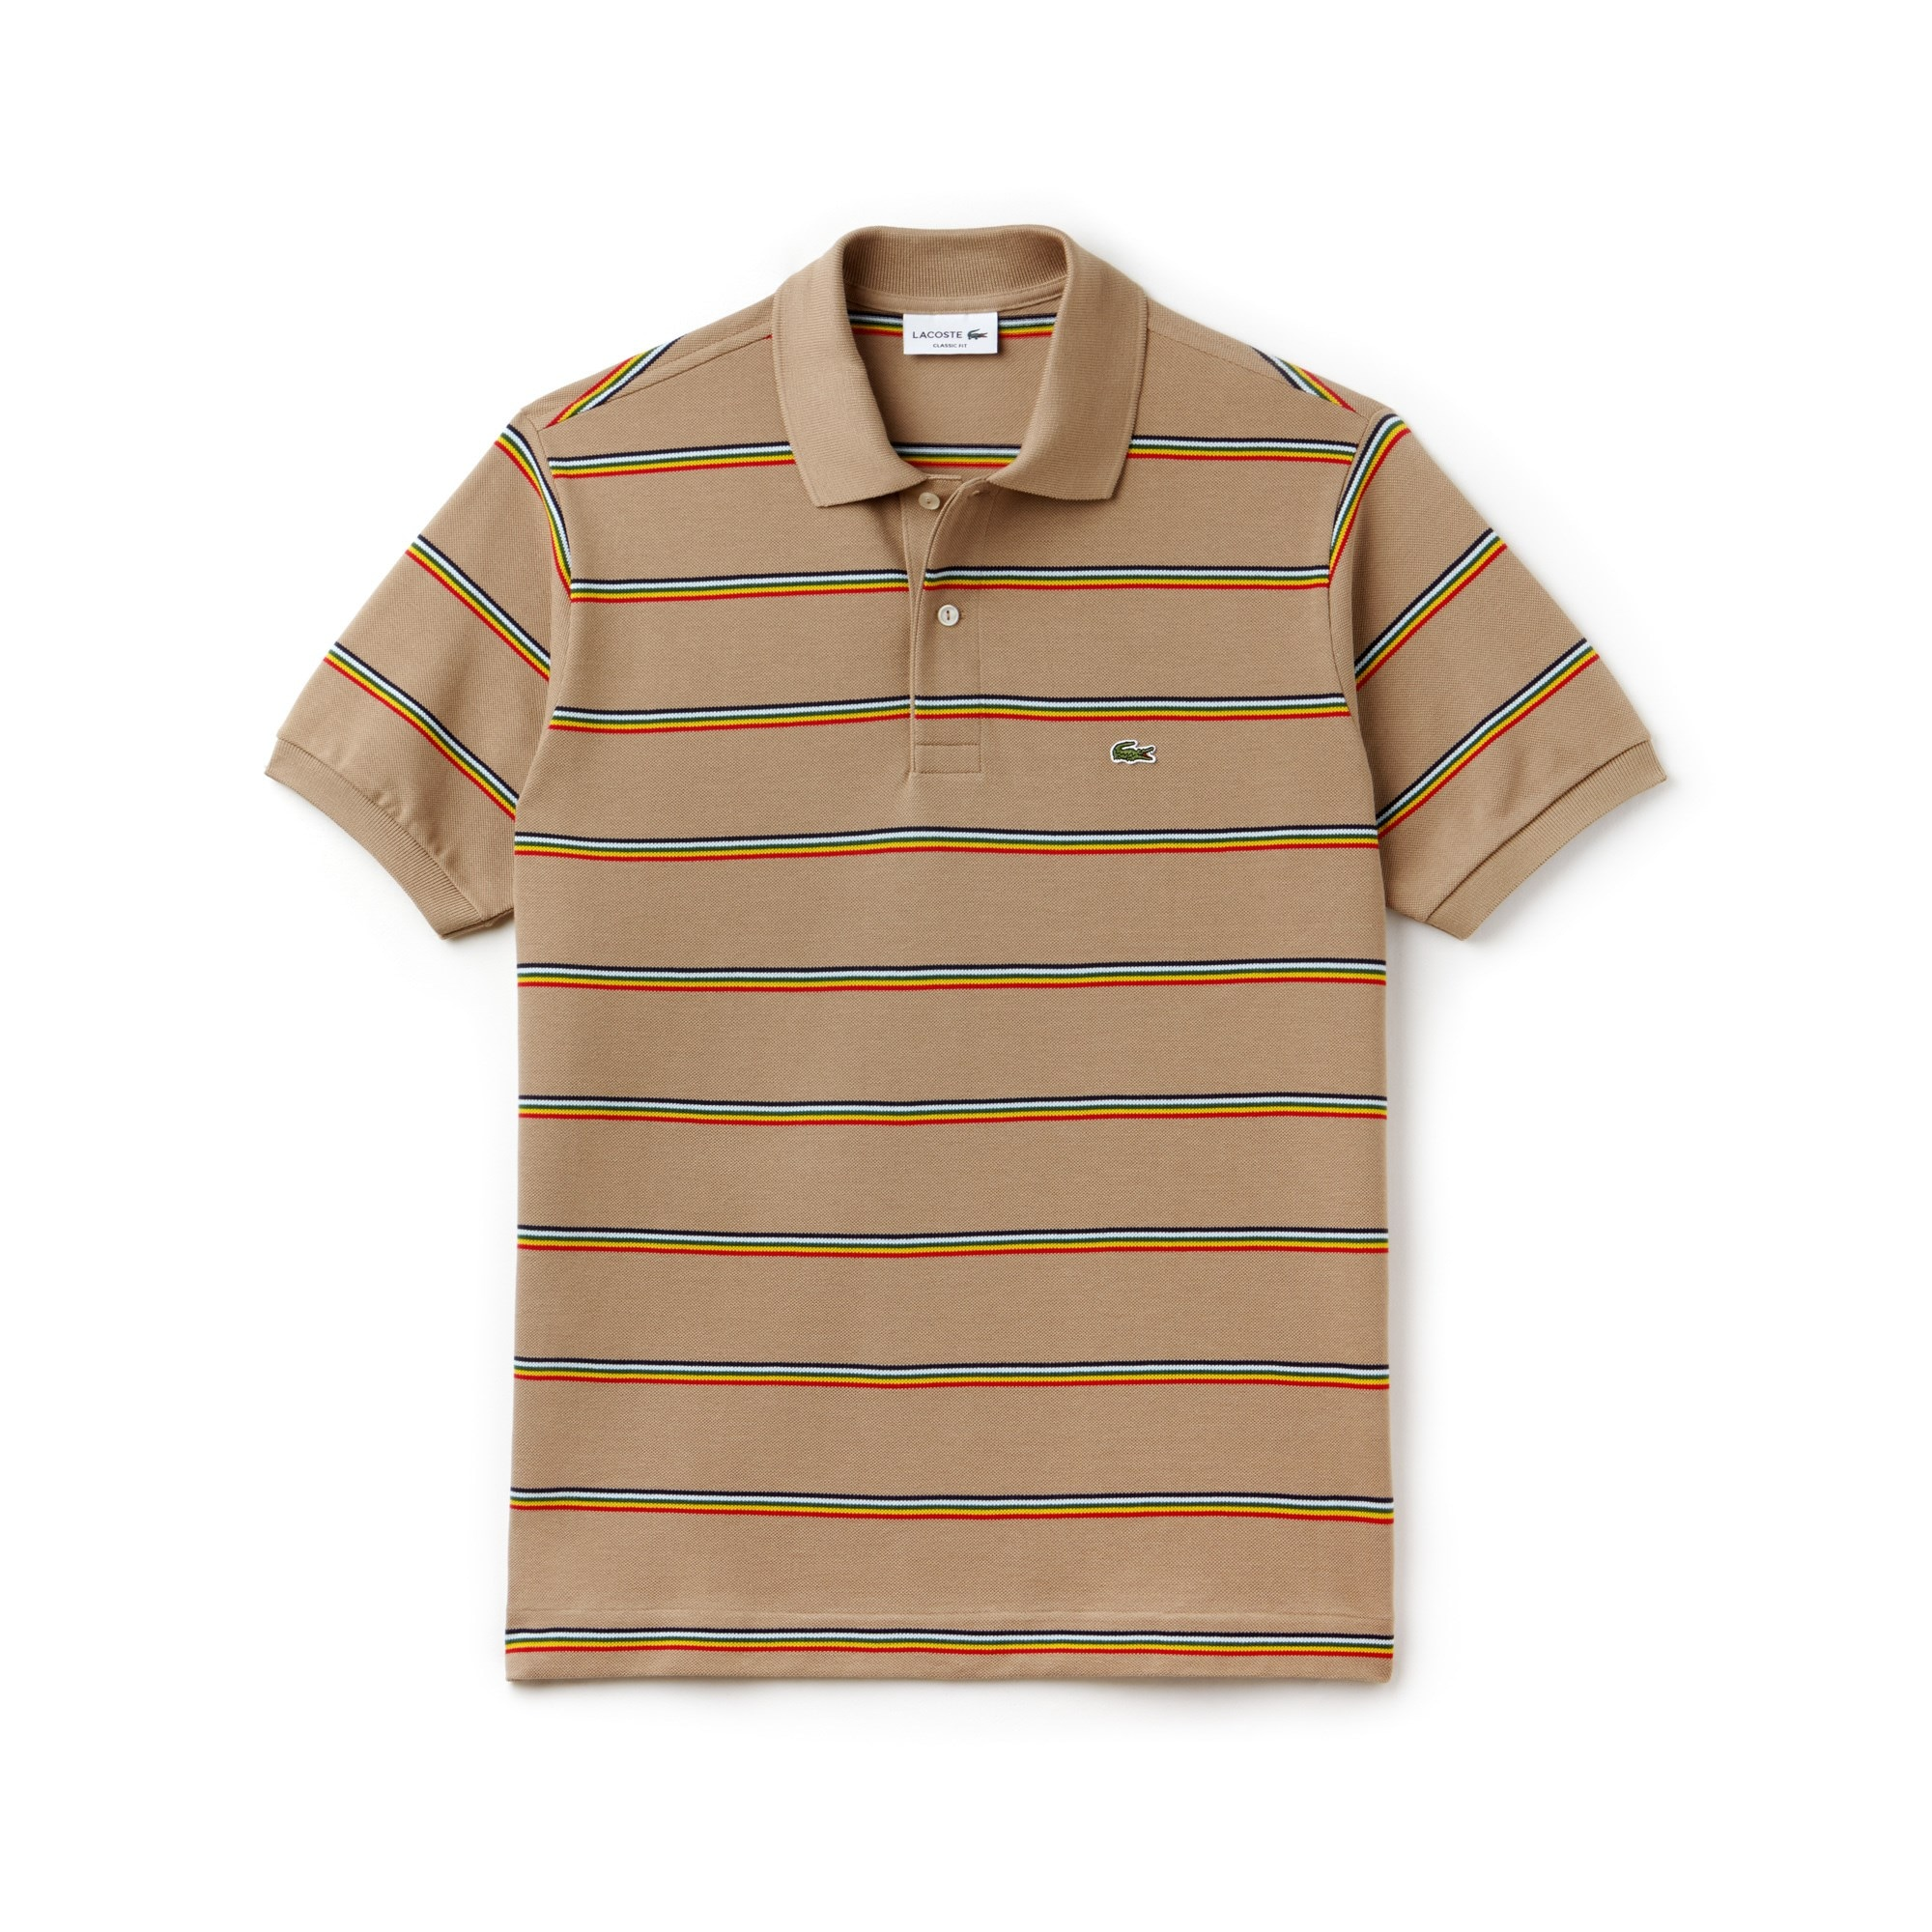 Men's Lacoste L.12.12 Striped Cotton Piqué Polo Shirt